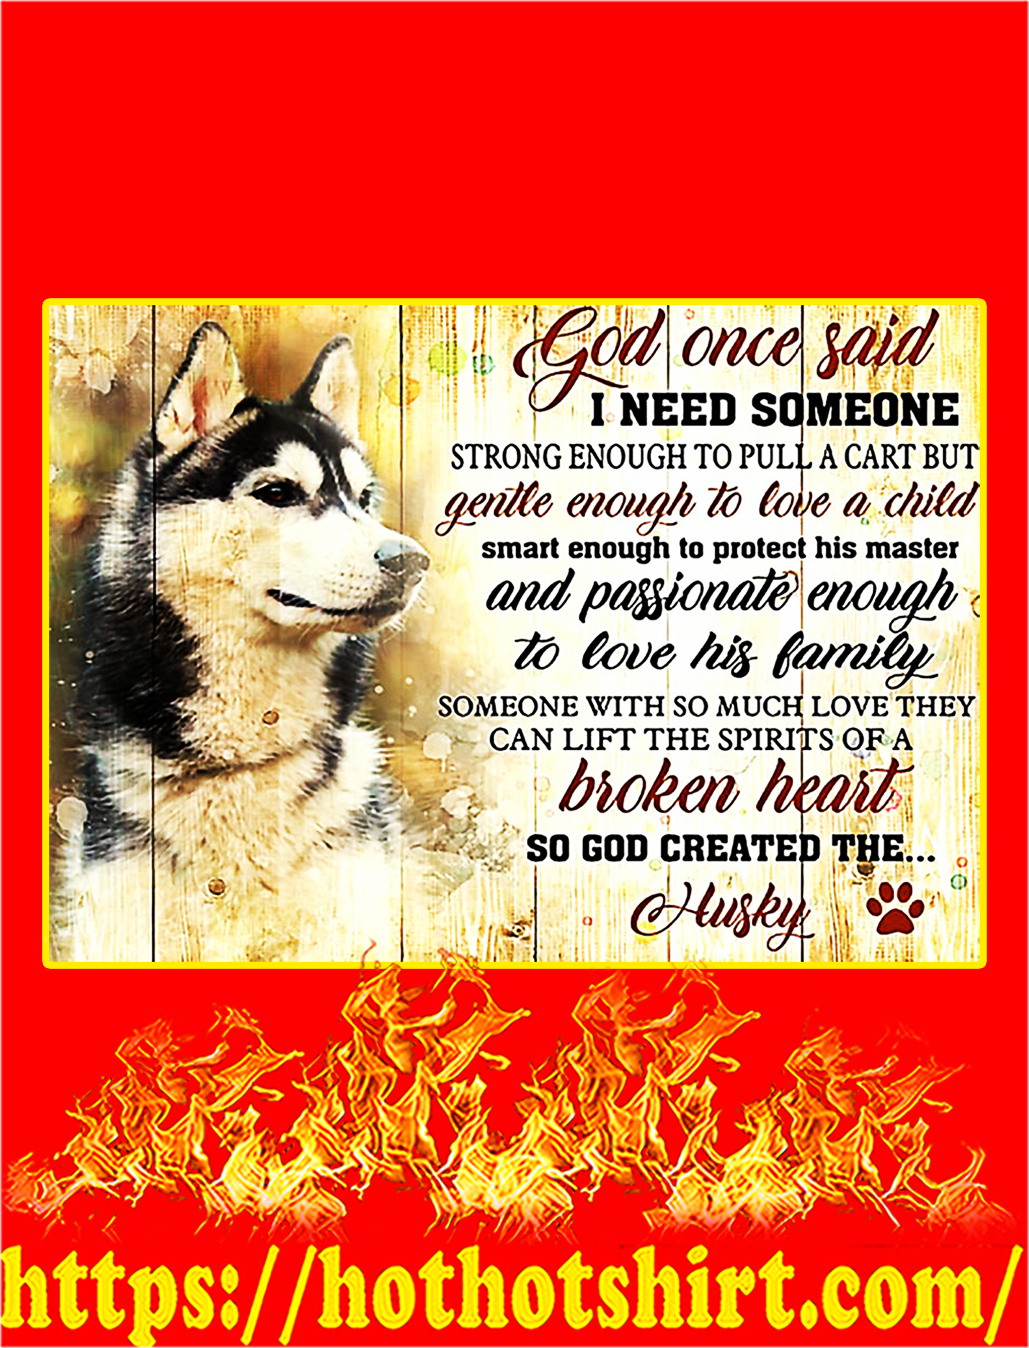 God once said husky poster - A3